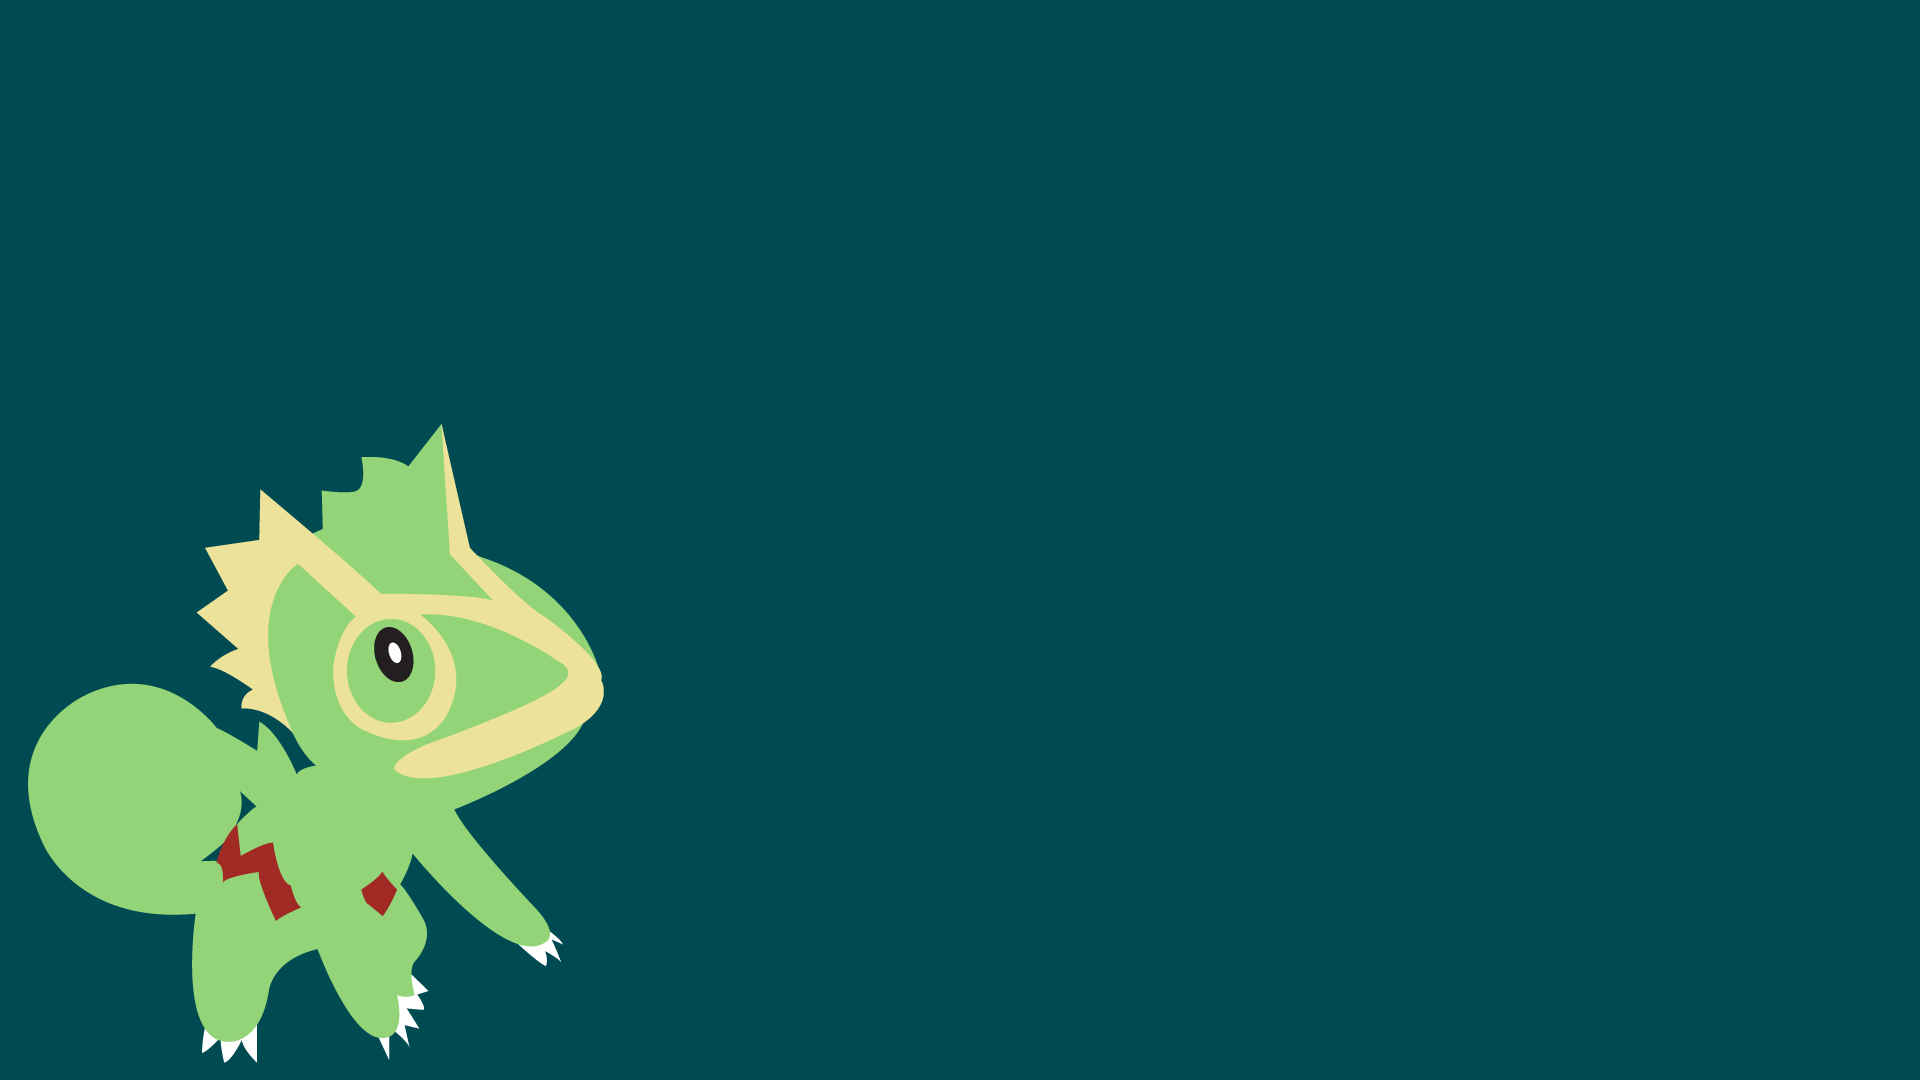 Kecleon Wallpapers : pokemon